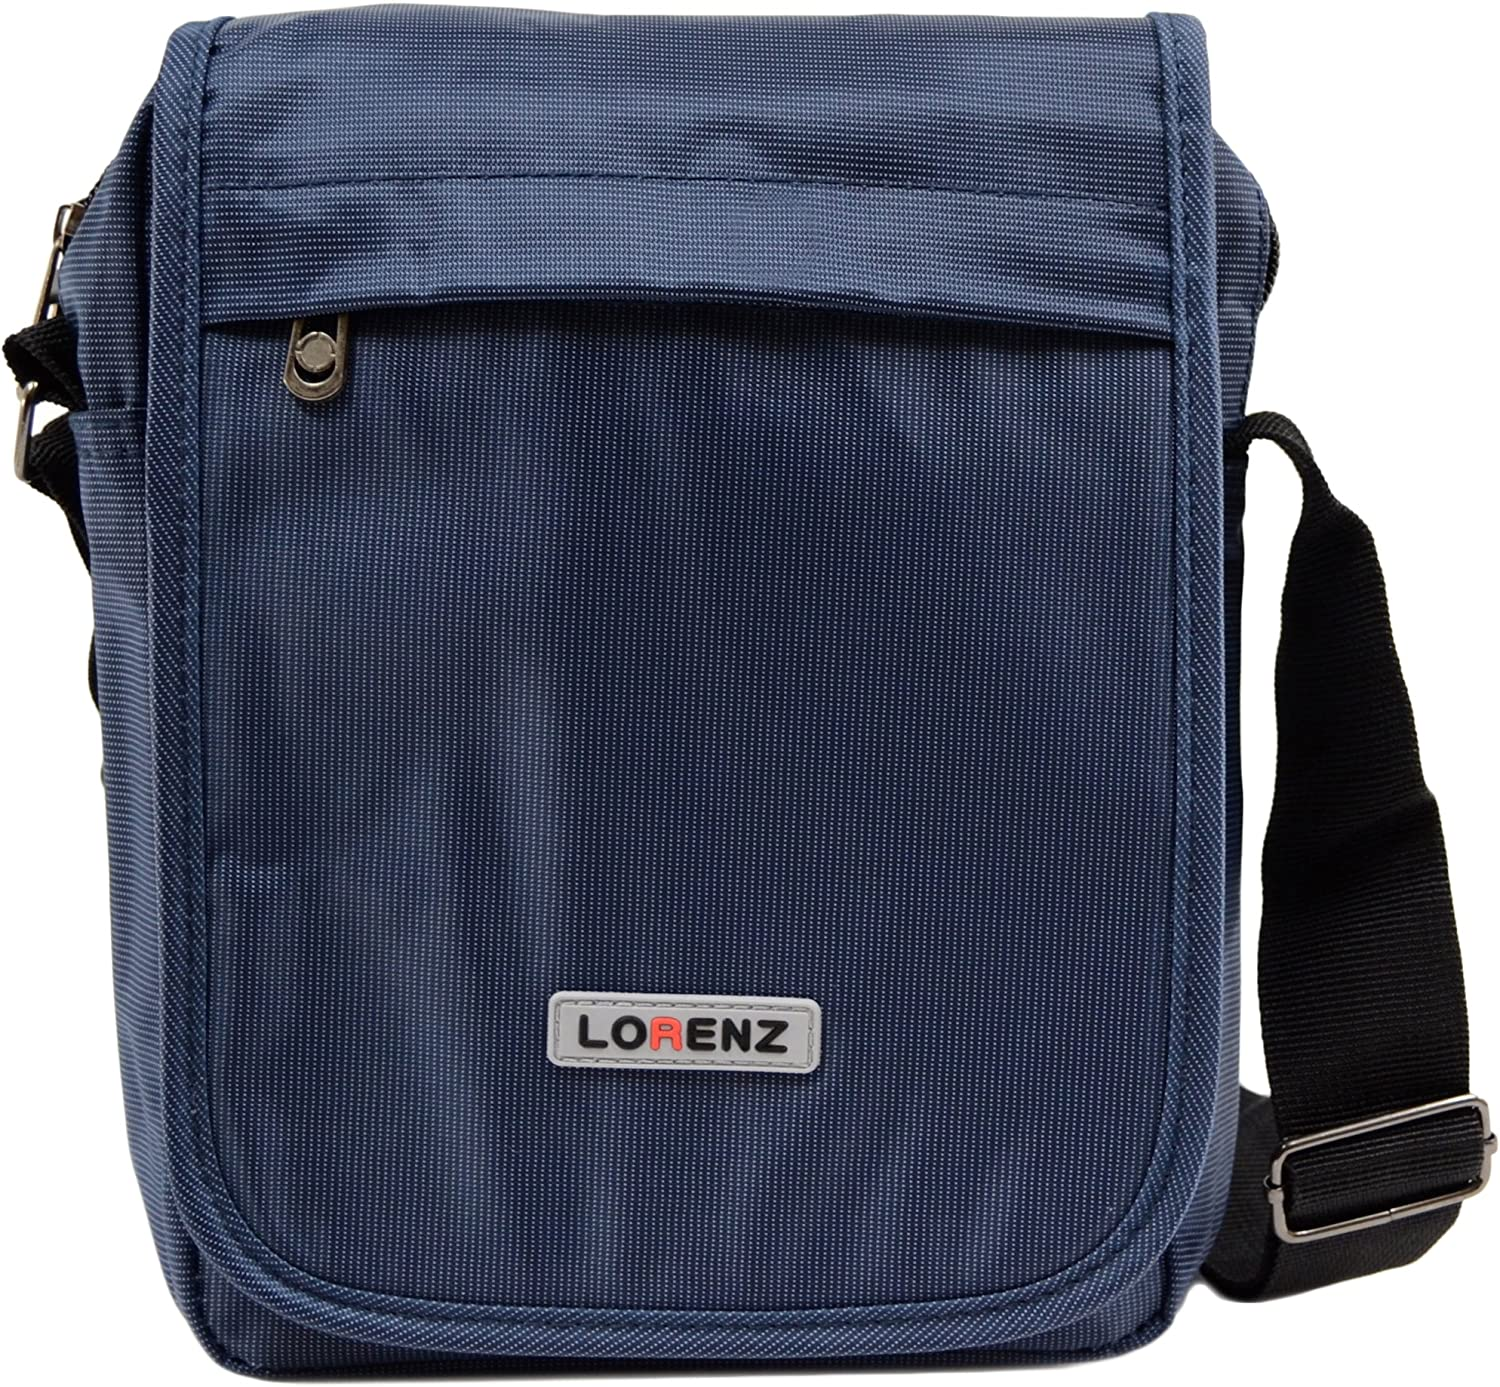 Mens   Ladies Sleek Nylon   Canvas Style Travel   Work 'Small Canvas' Shoulder Bag - Navy